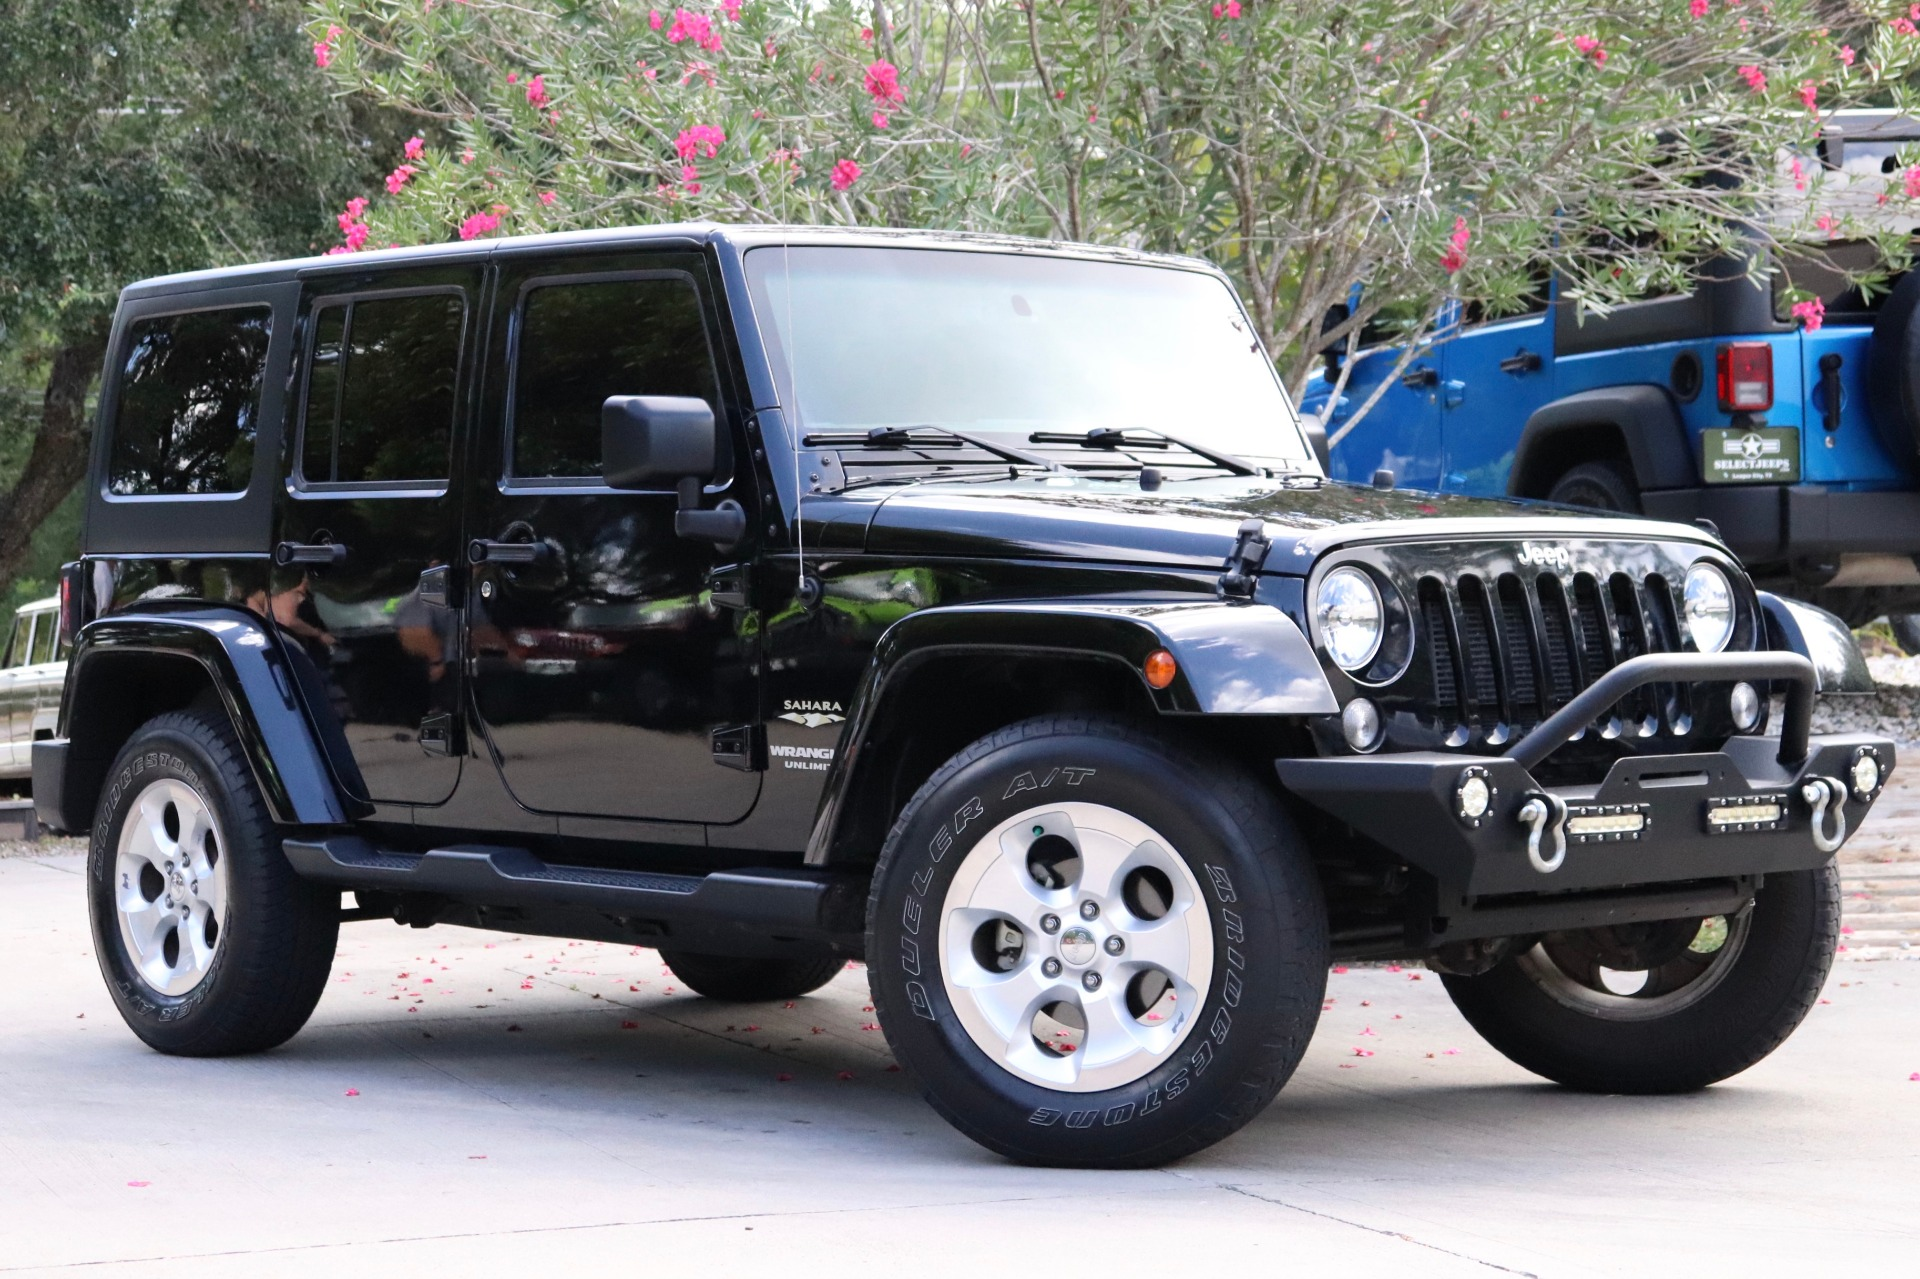 Used-2015-Jeep-Wrangler-Unlimited-Sahara-Sahara